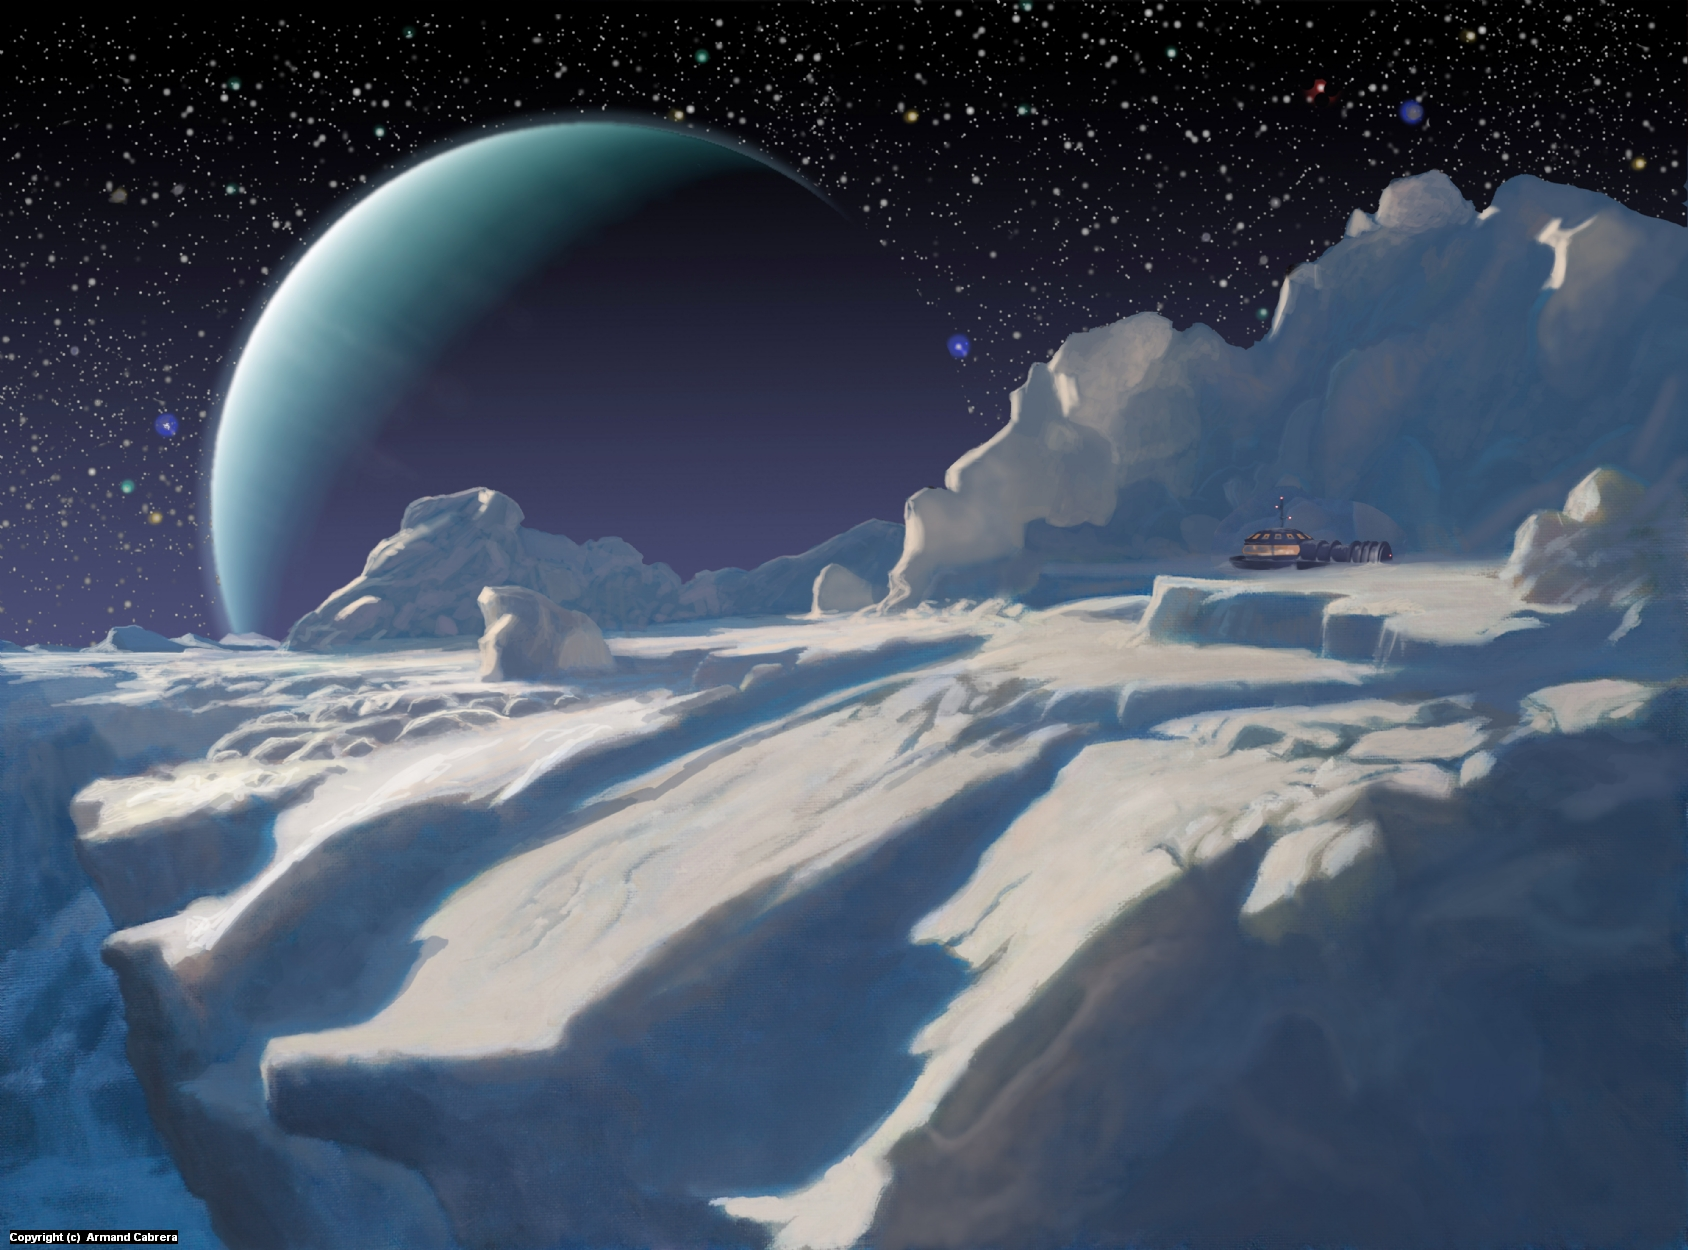 Ice Station Artwork by Armand Cabrera